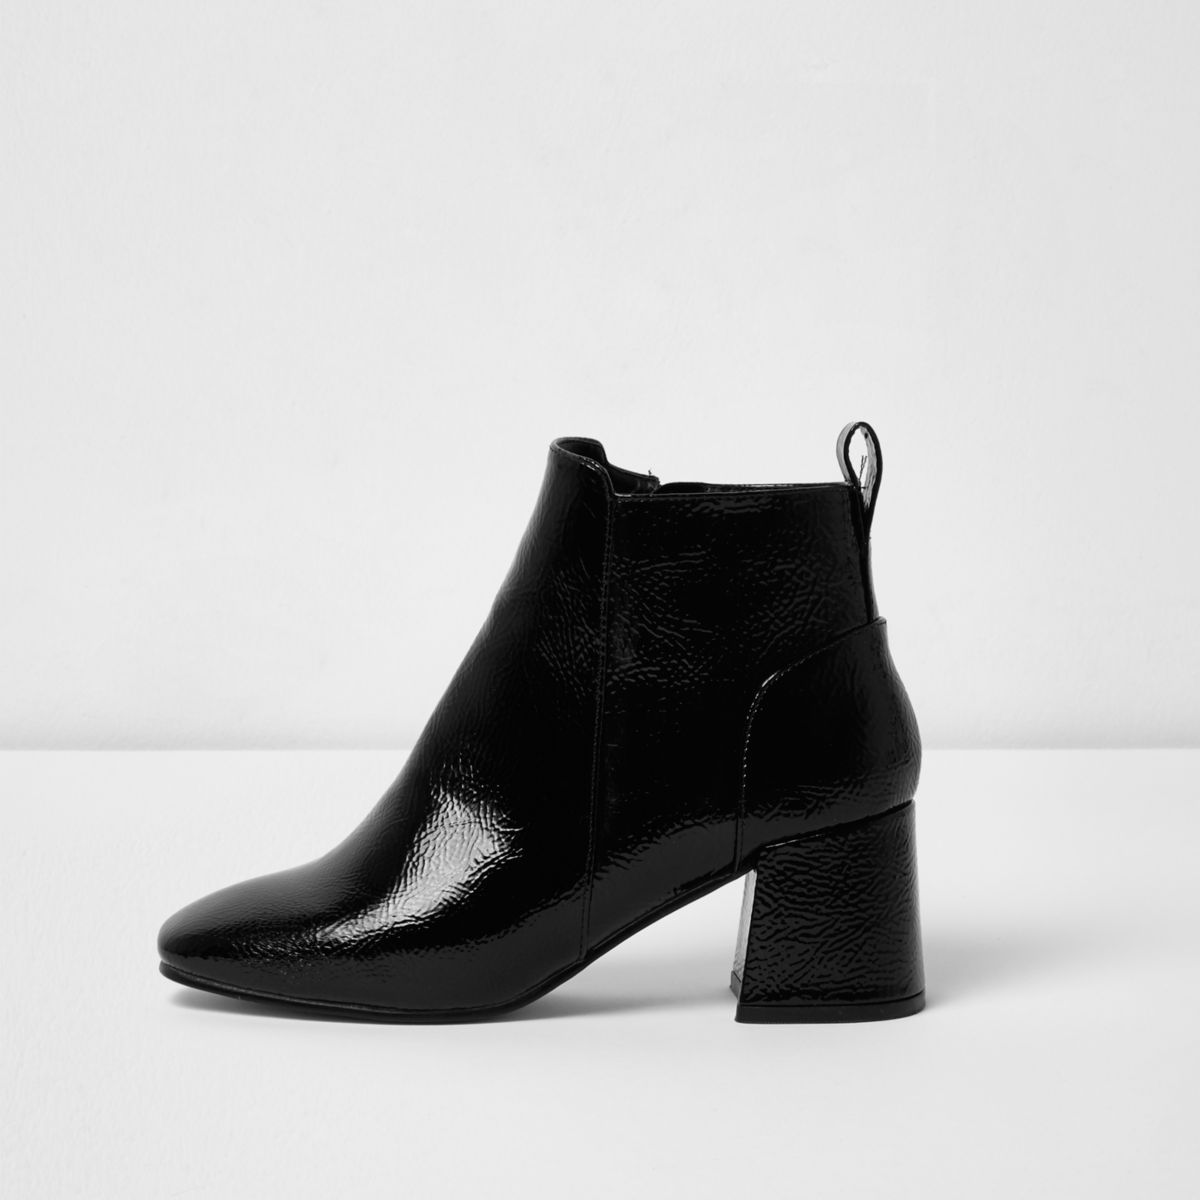 Womens Black square toe block heel boots River Island Cheap Sale Release Dates Buy Cheap With Paypal Discount Shop For Authentic Online Outlet 100% Guaranteed RlZnTT3x